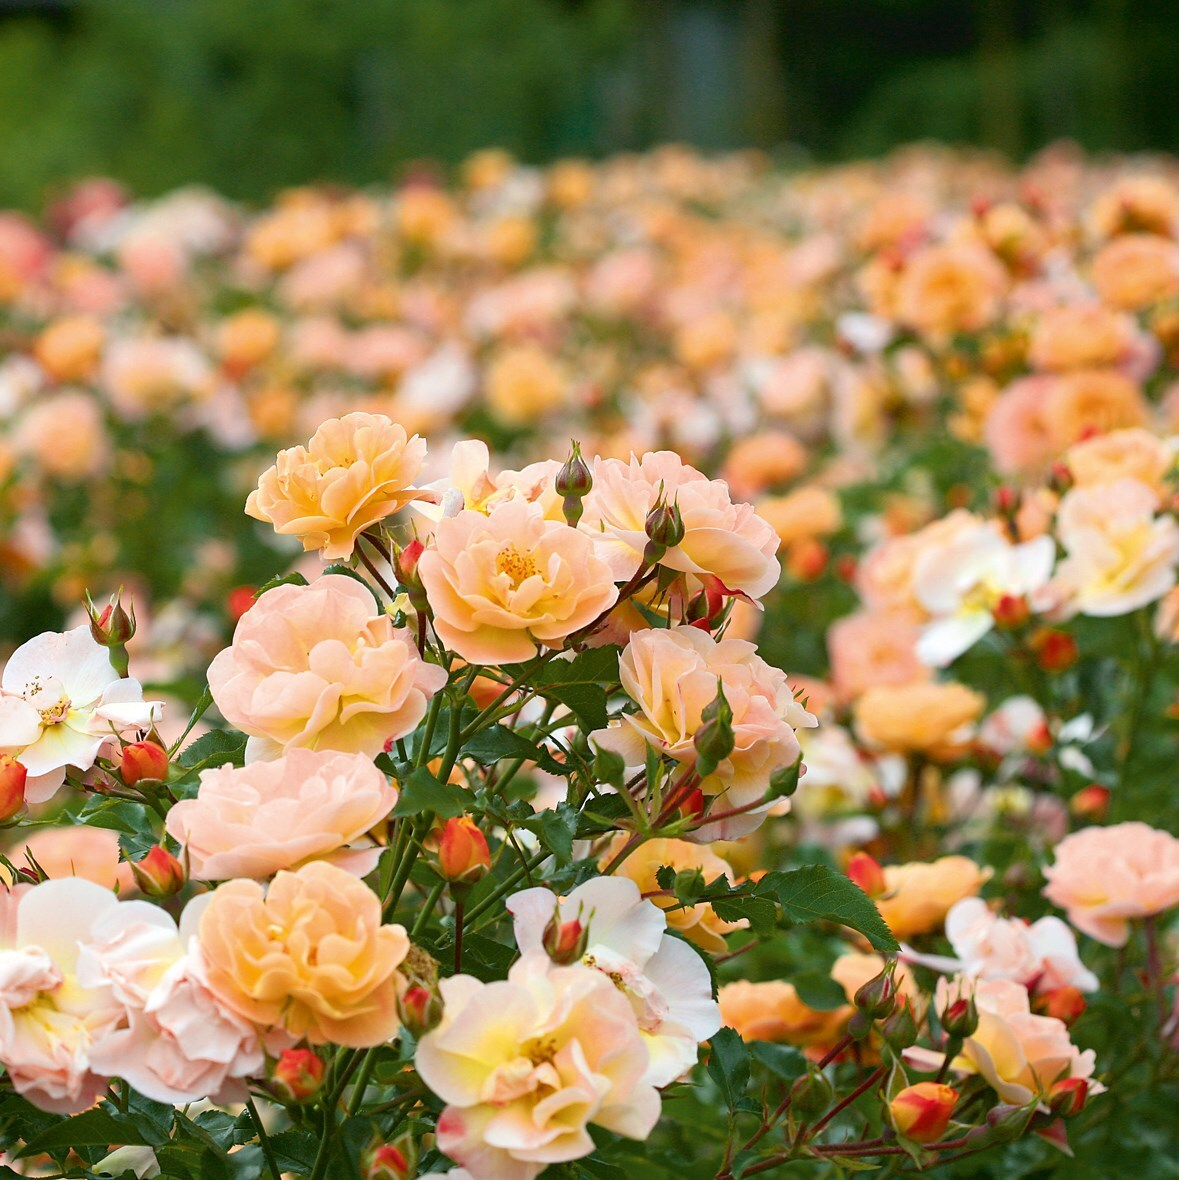 Buy Rose Flower Carpet Amber Ground Cover Rose Rosa Flower Carpet